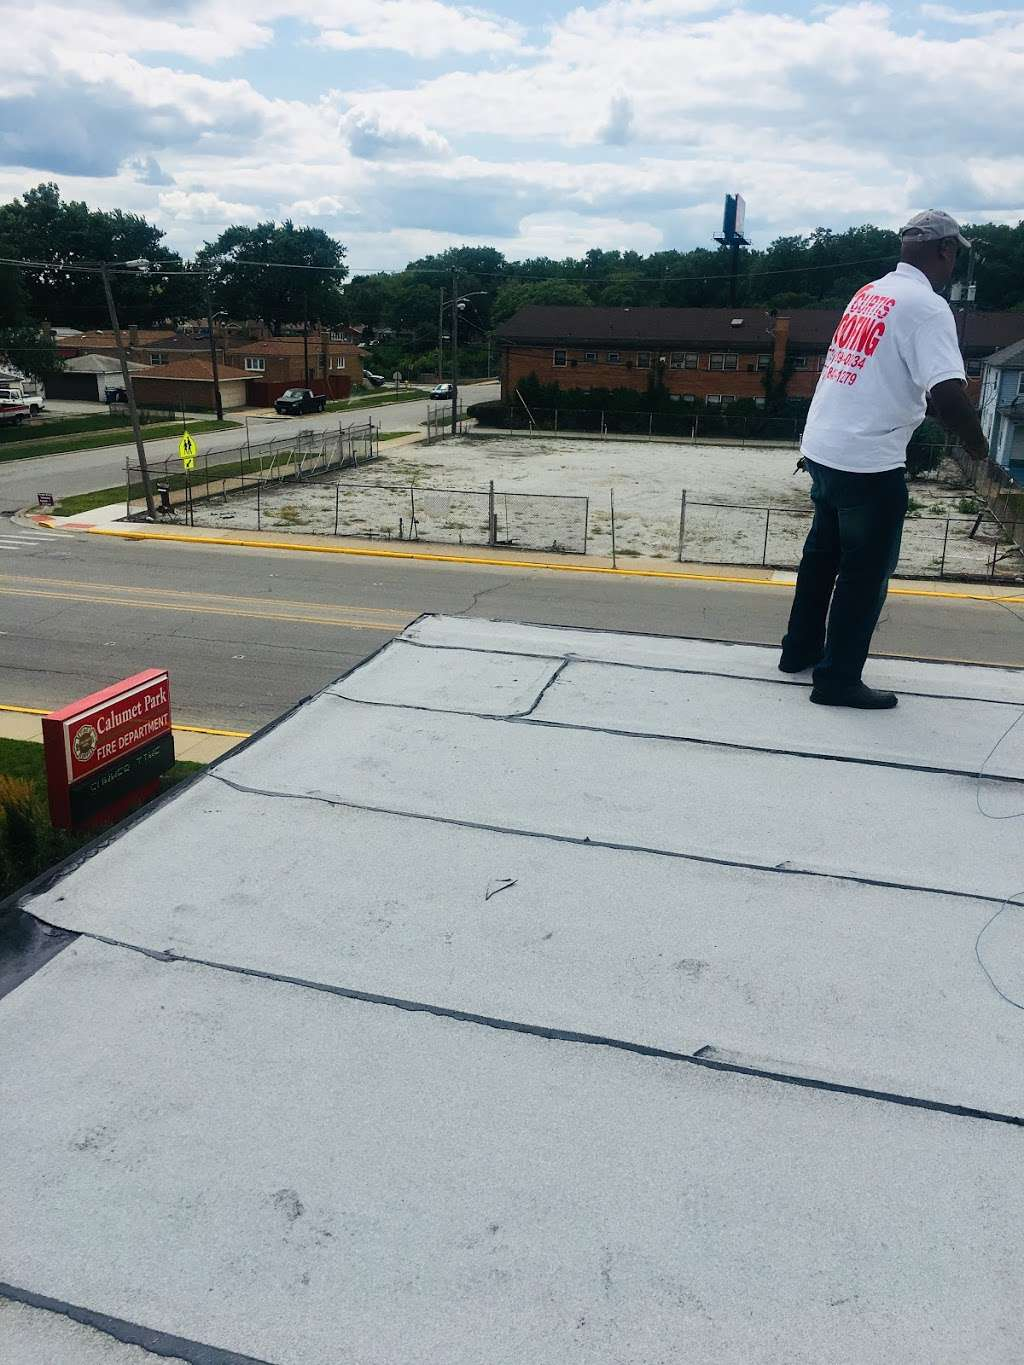 Curtis Roofing & Construction - roofing contractor    Photo 2 of 2   Address: 14225 S Halsted St, Riverdale, IL 60827, USA   Phone: (708) 849-1279